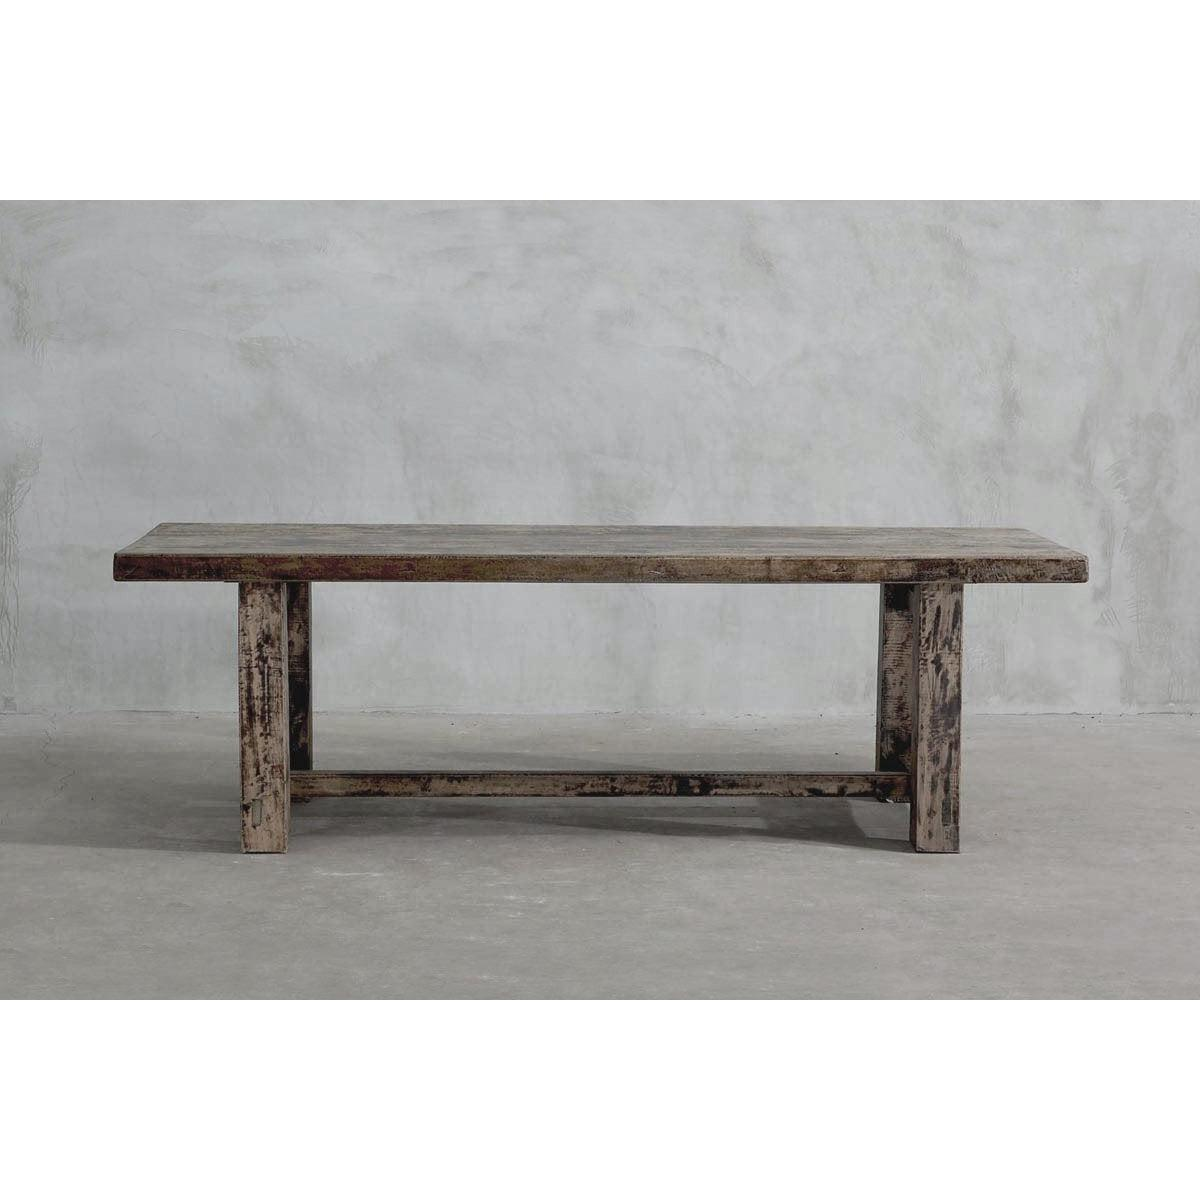 Reclaimed Elm Dining Table - Straight Frame Leg